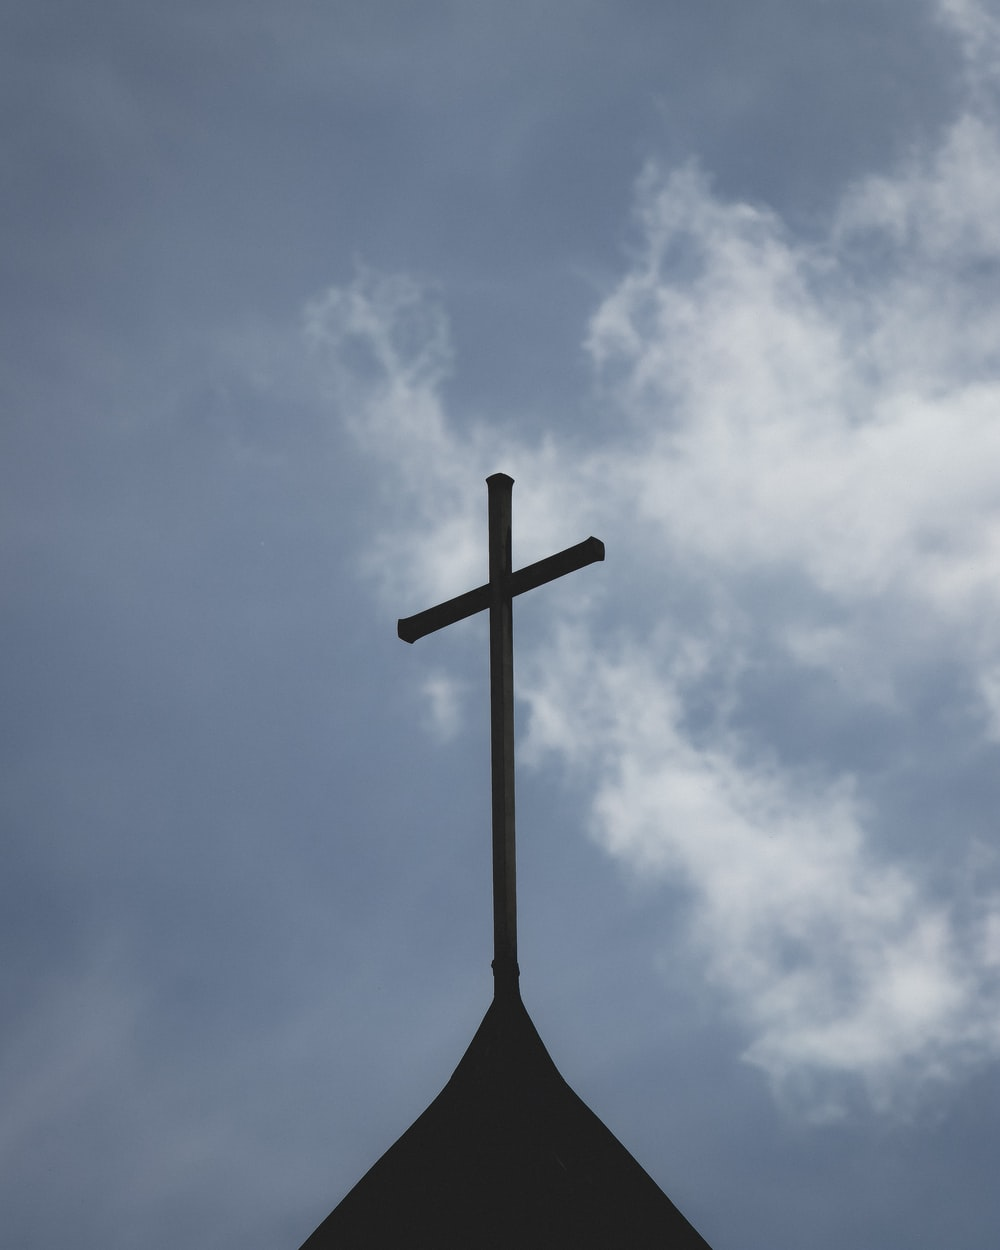 brown wooden cross under white clouds and blue sky during daytime